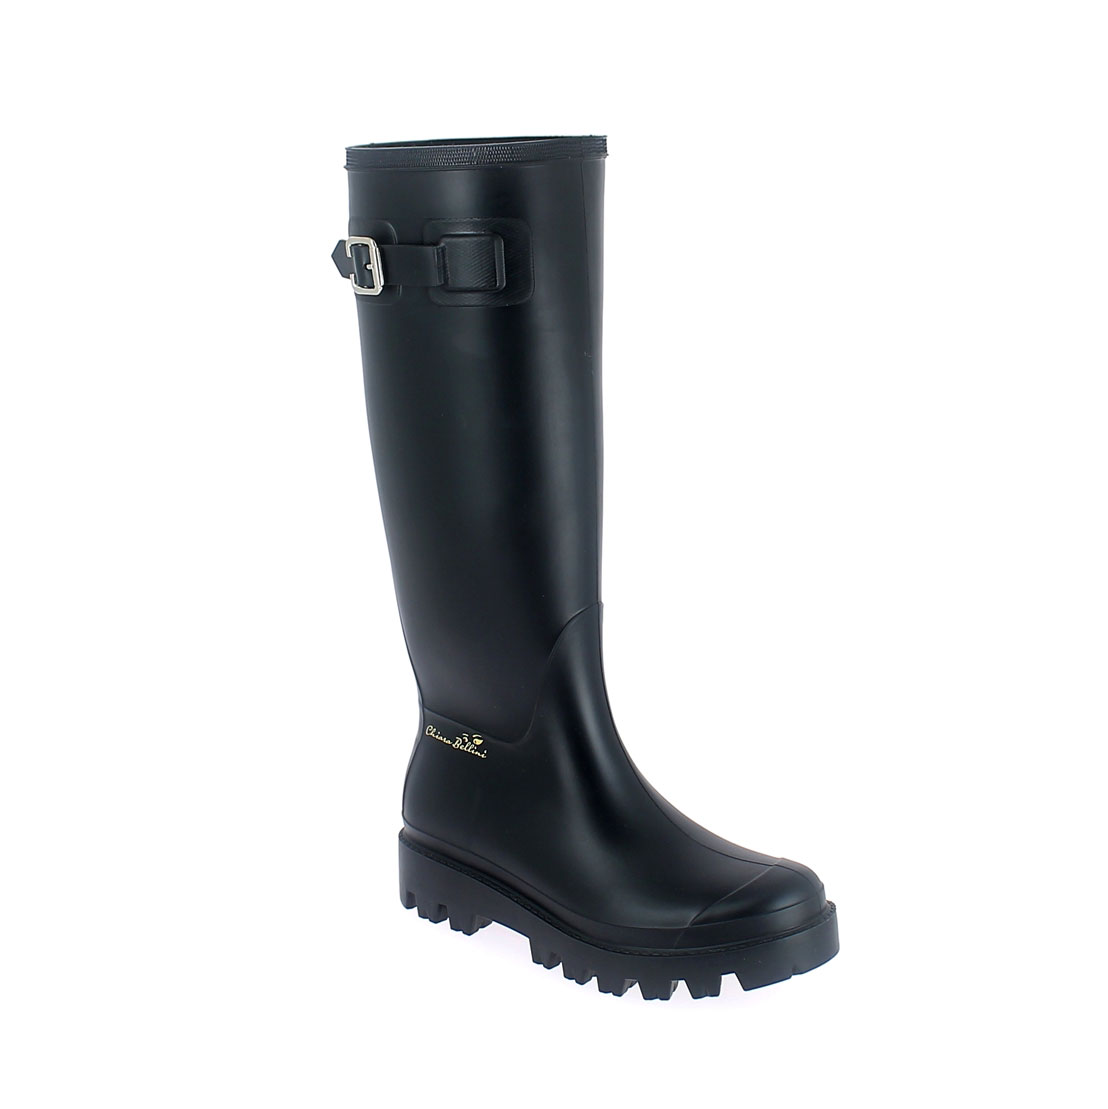 Wellington boot Nero con fibbia in metallo e logo in 3D